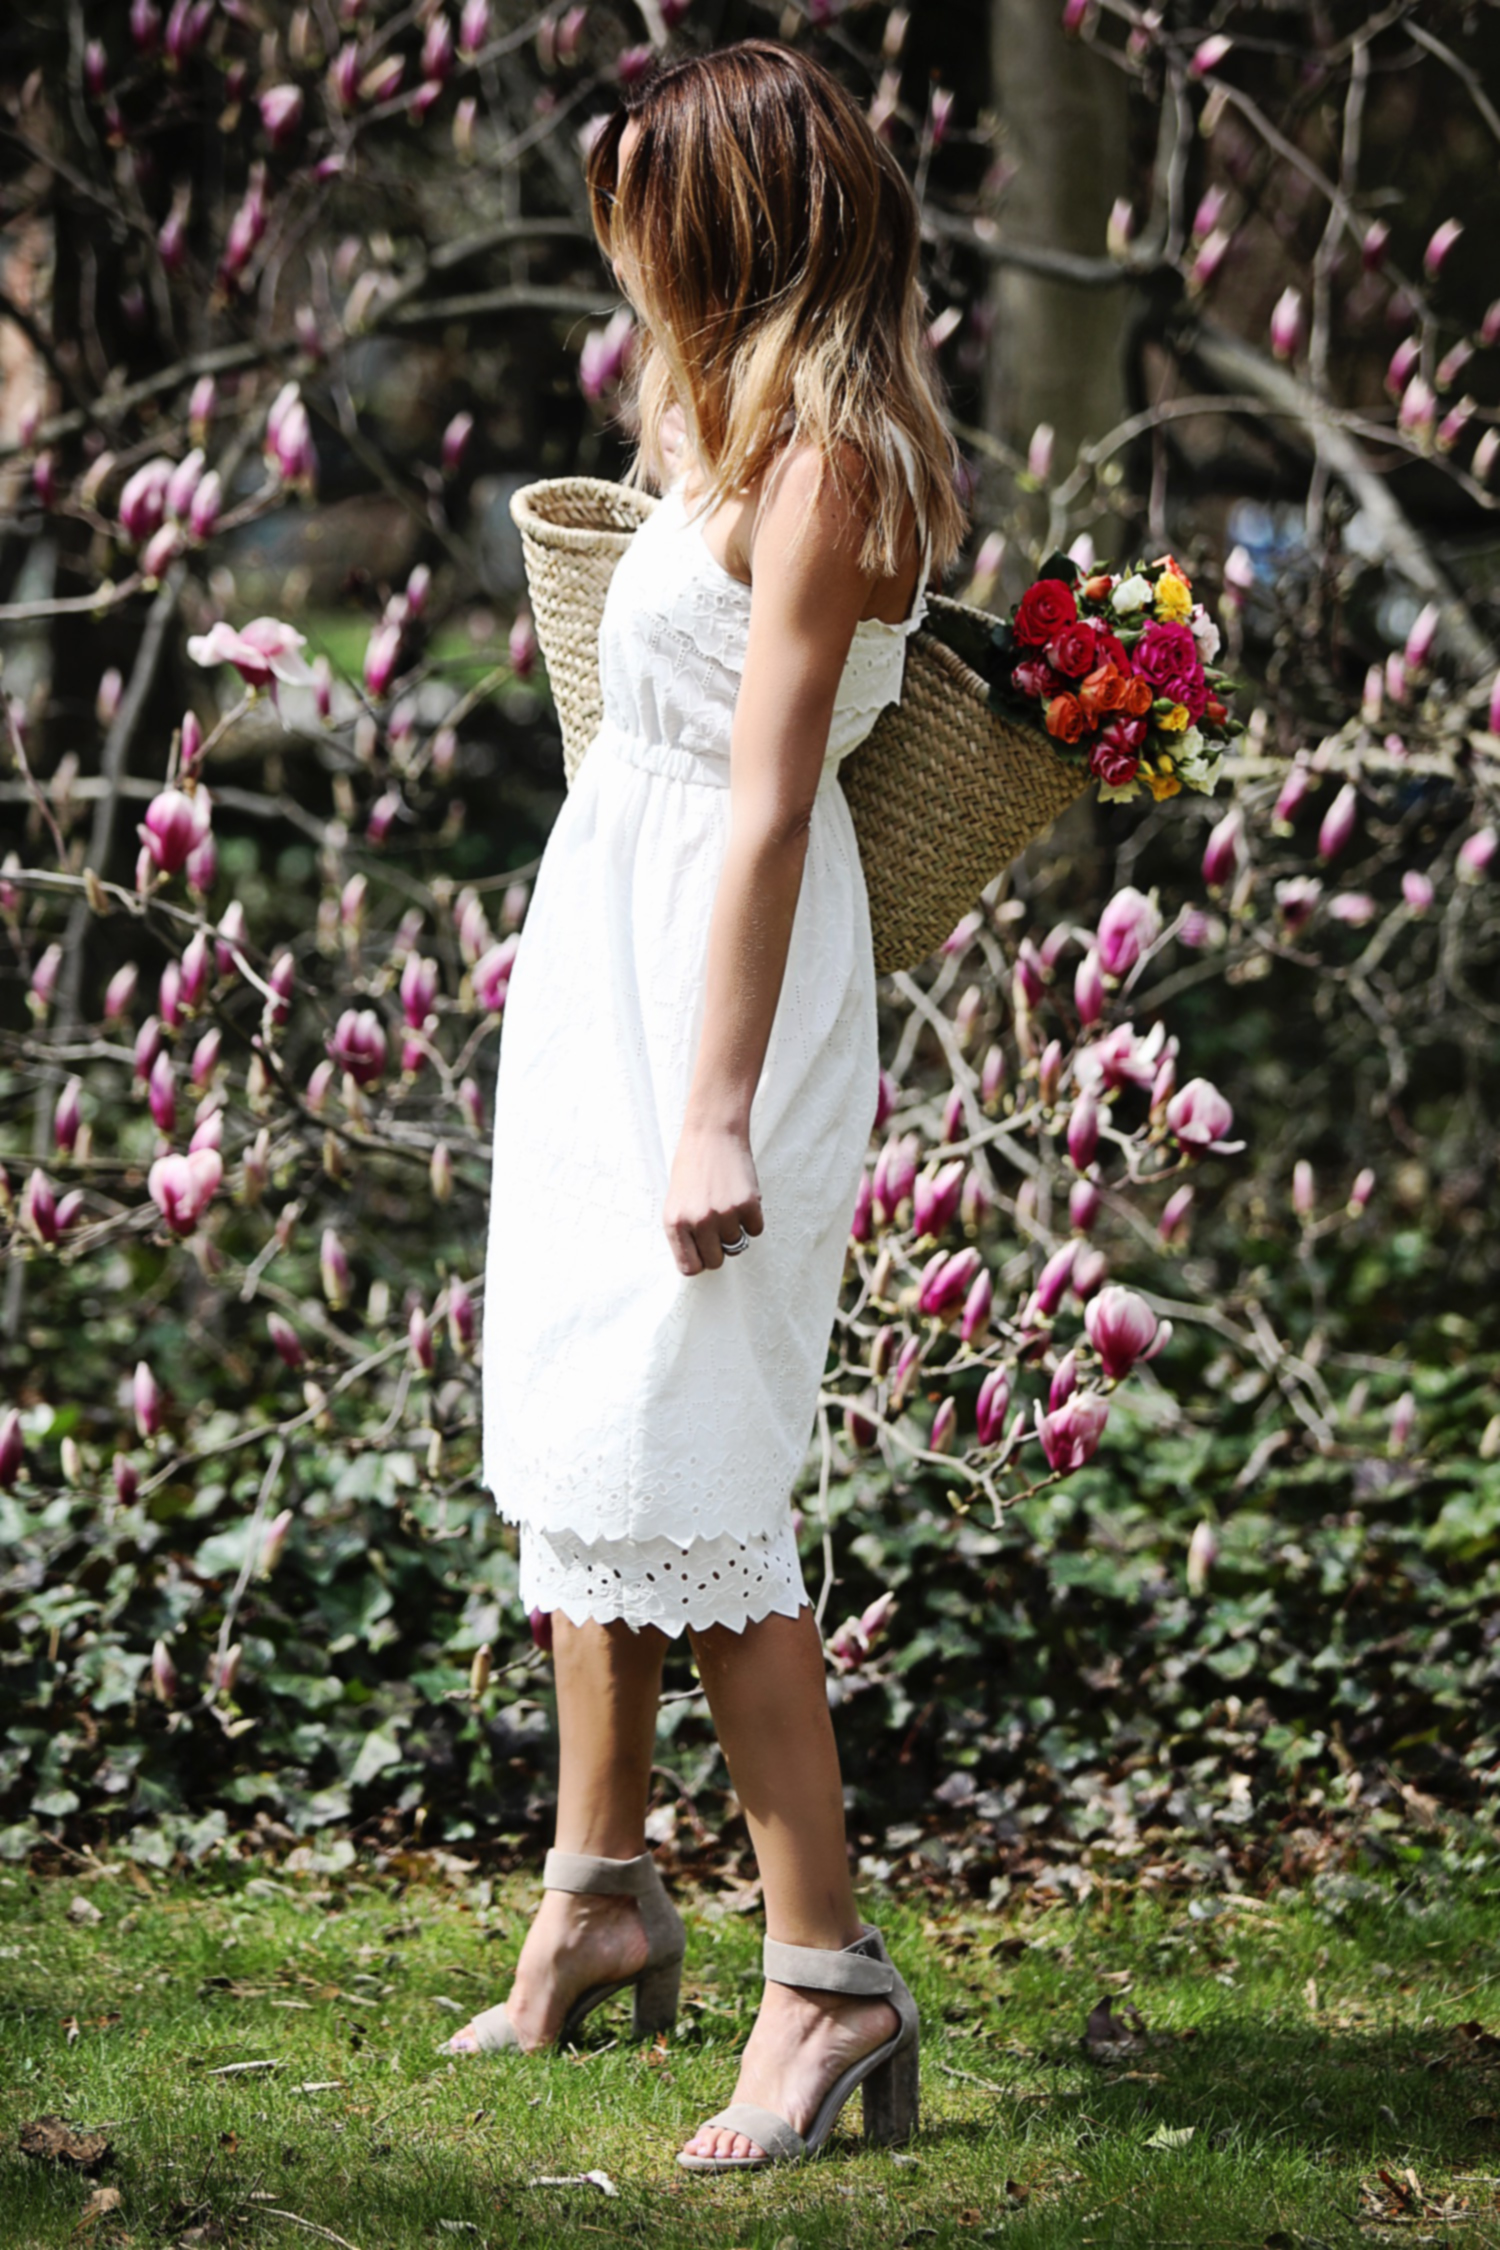 The Motherchic wearing madewell white dress